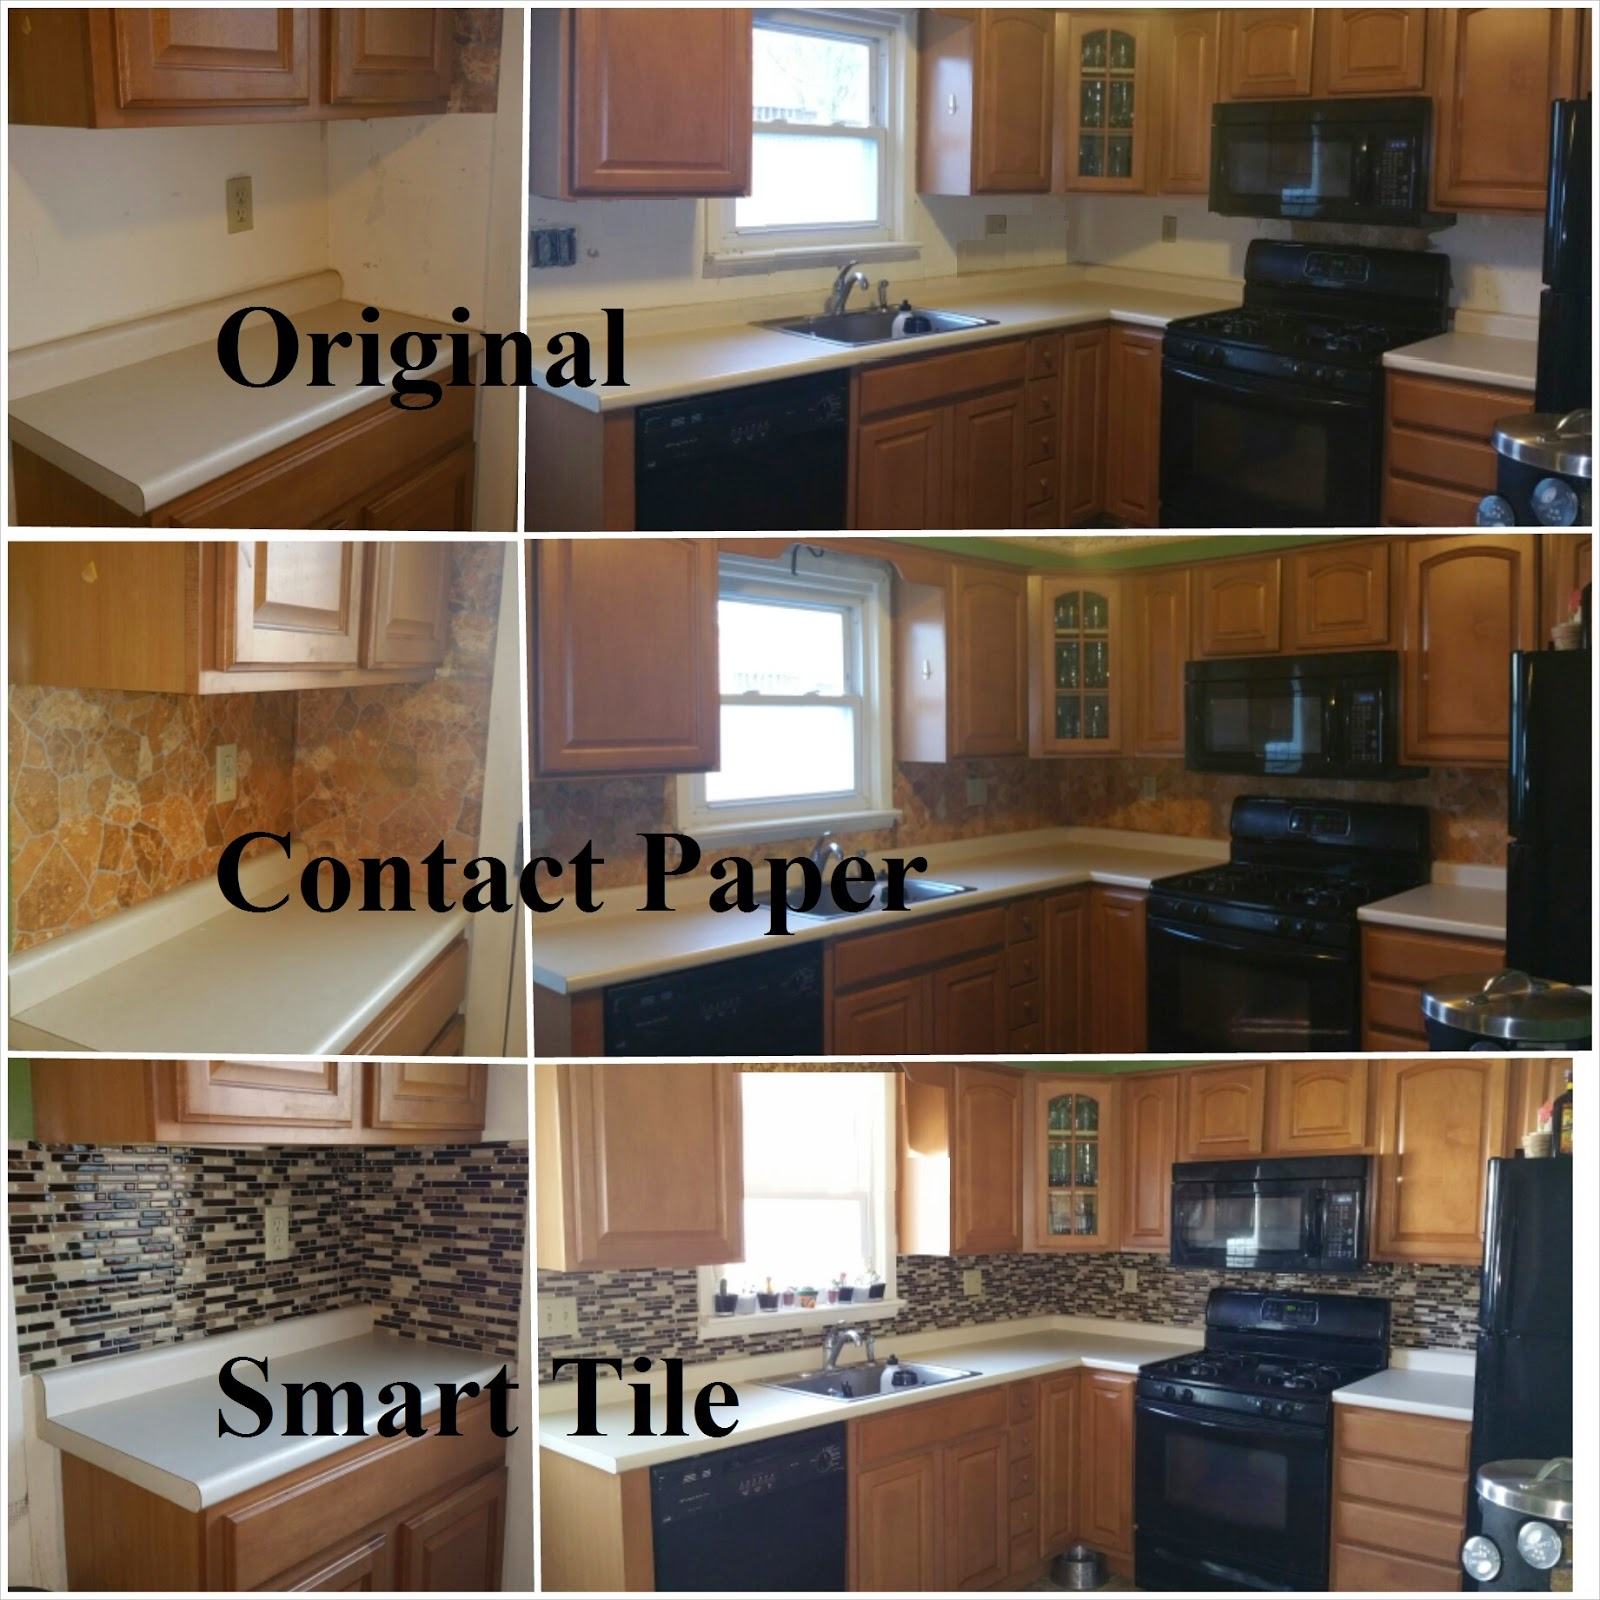 Contact Paper Used For Backsplash In Kitchen